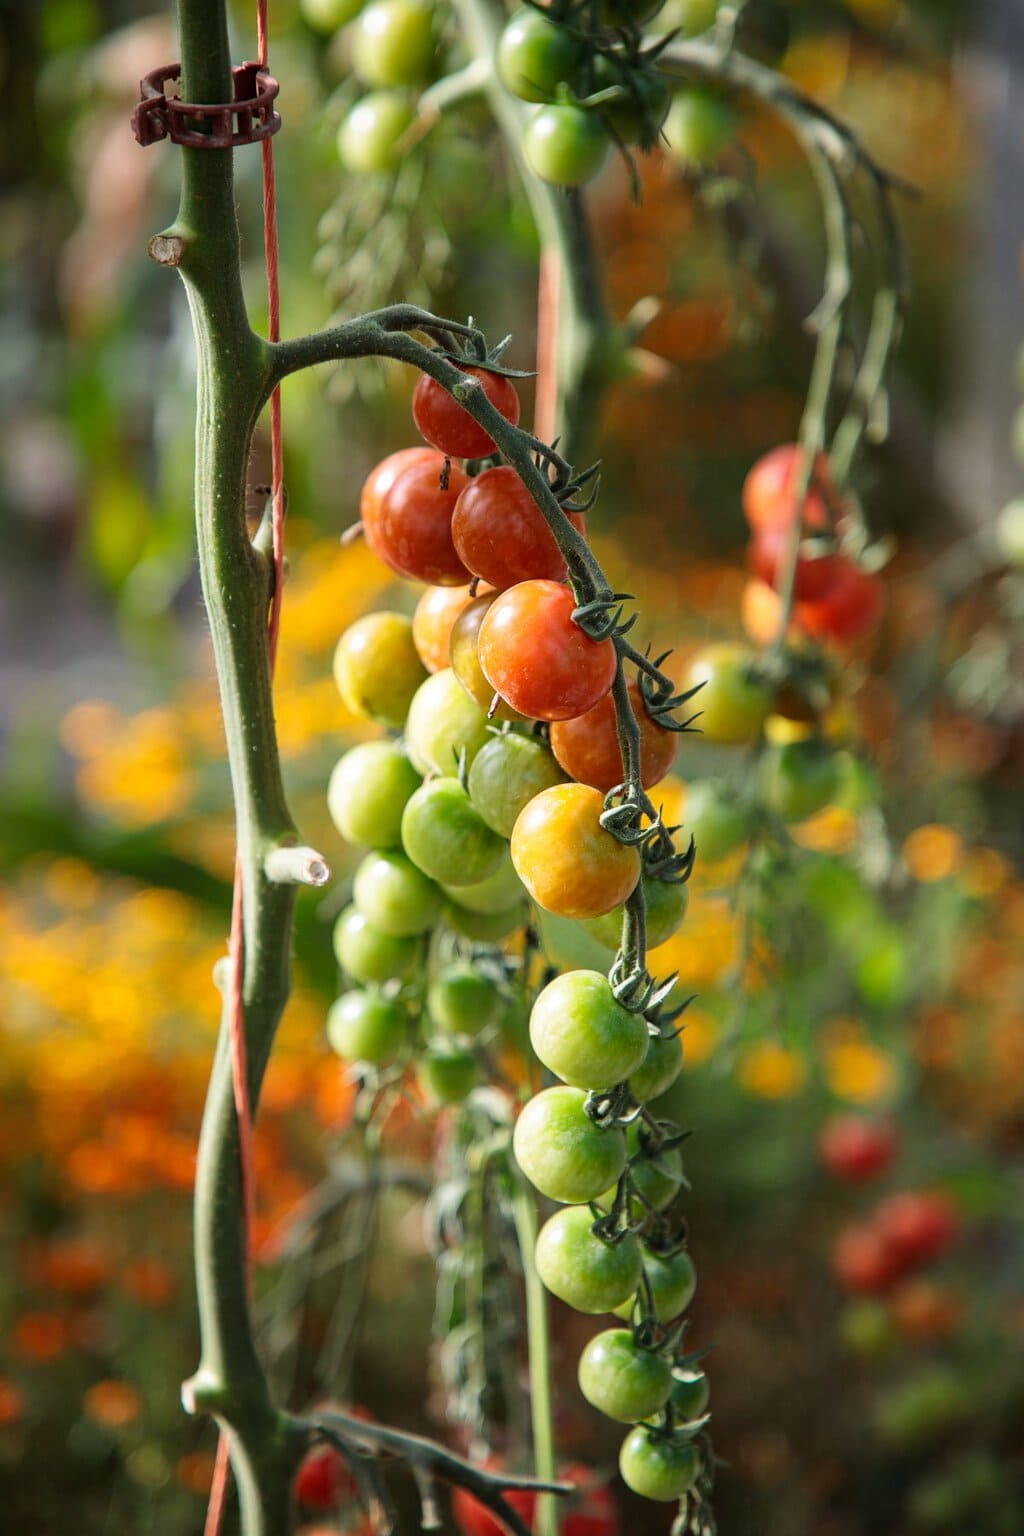 Closeup photo of tomatoes on the vine in the glass houses at Ballymaloe Farm.